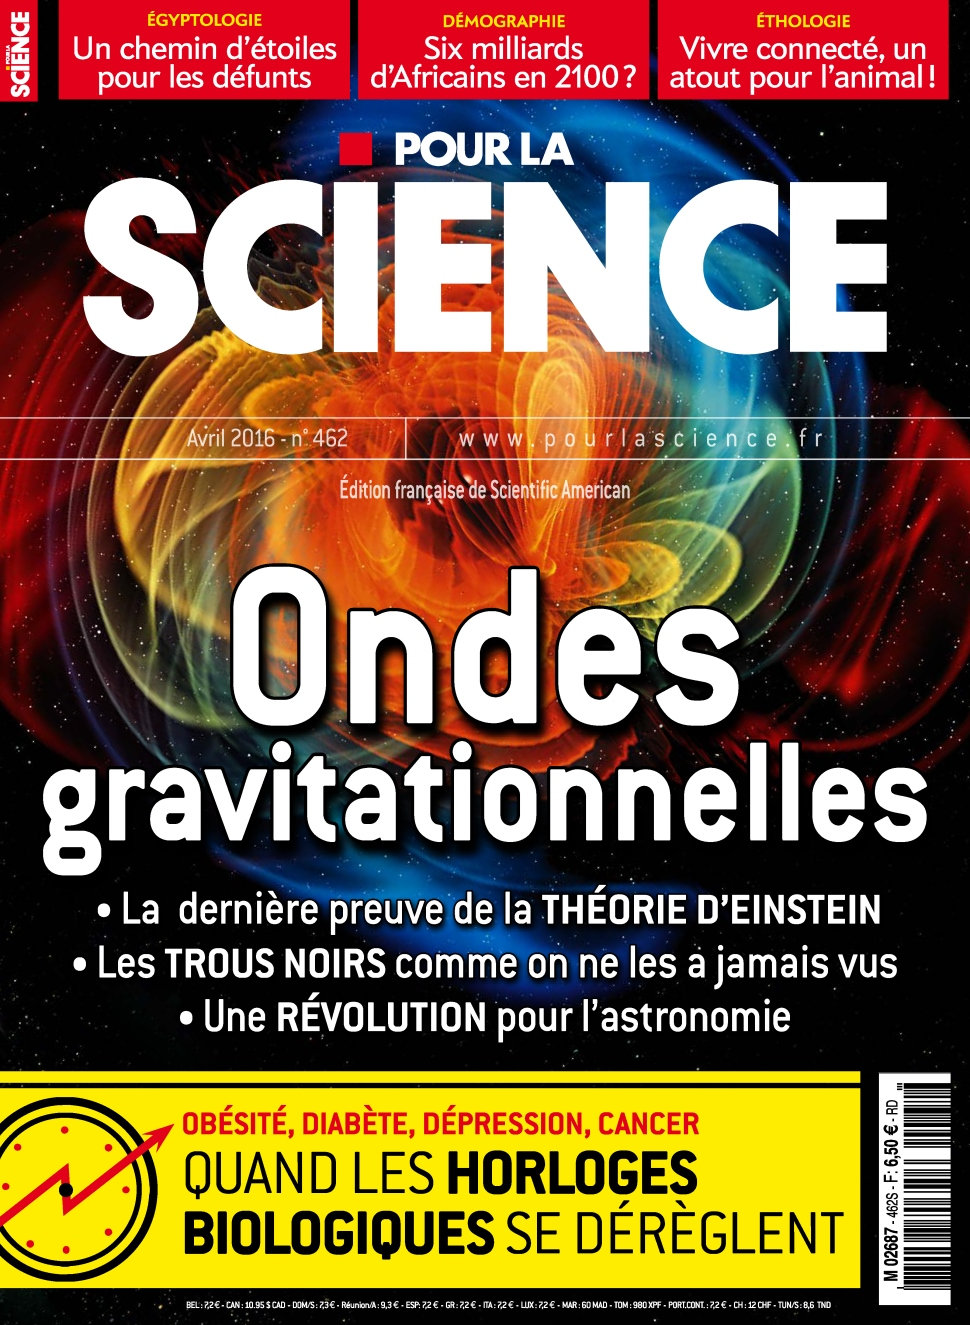 Pour la Science N°462 - Avril 2016